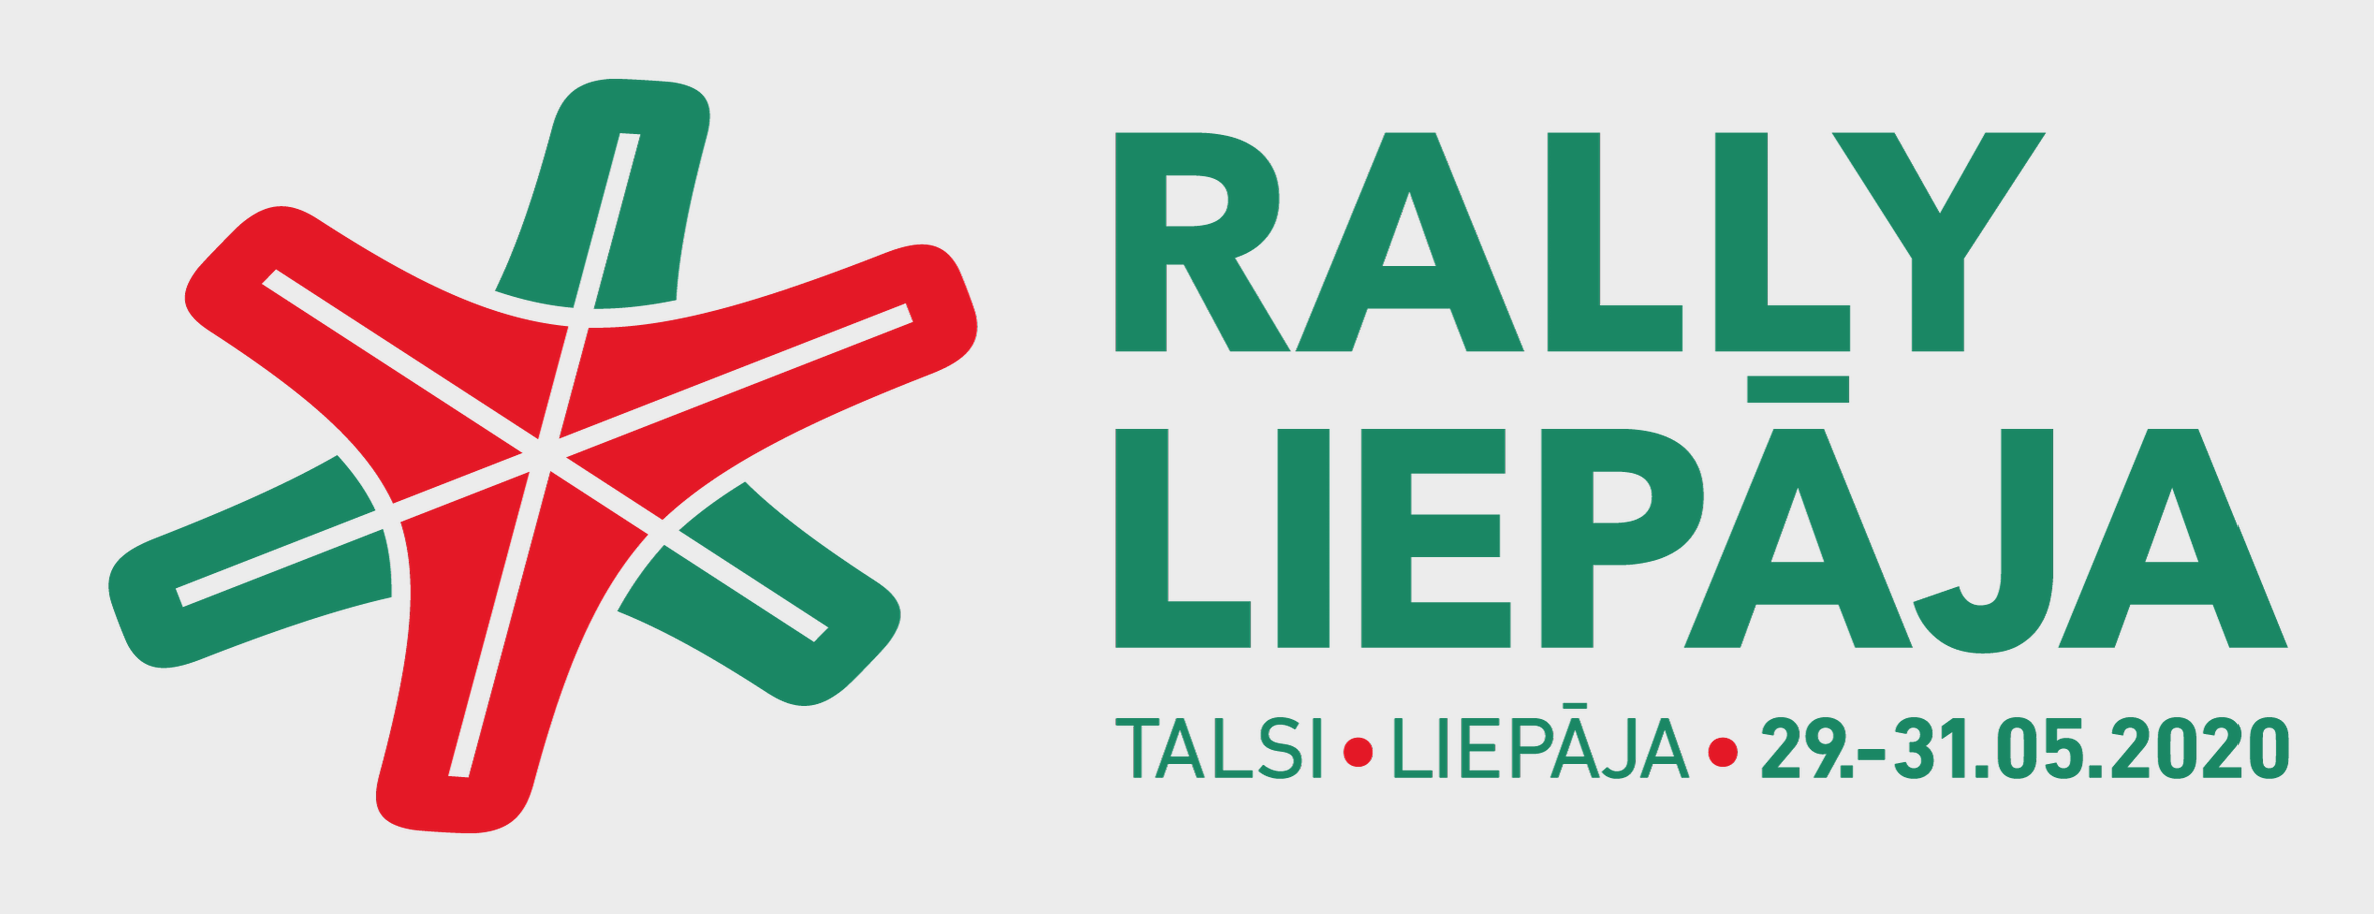 ERC Rally Liepaja gets refreshed logo